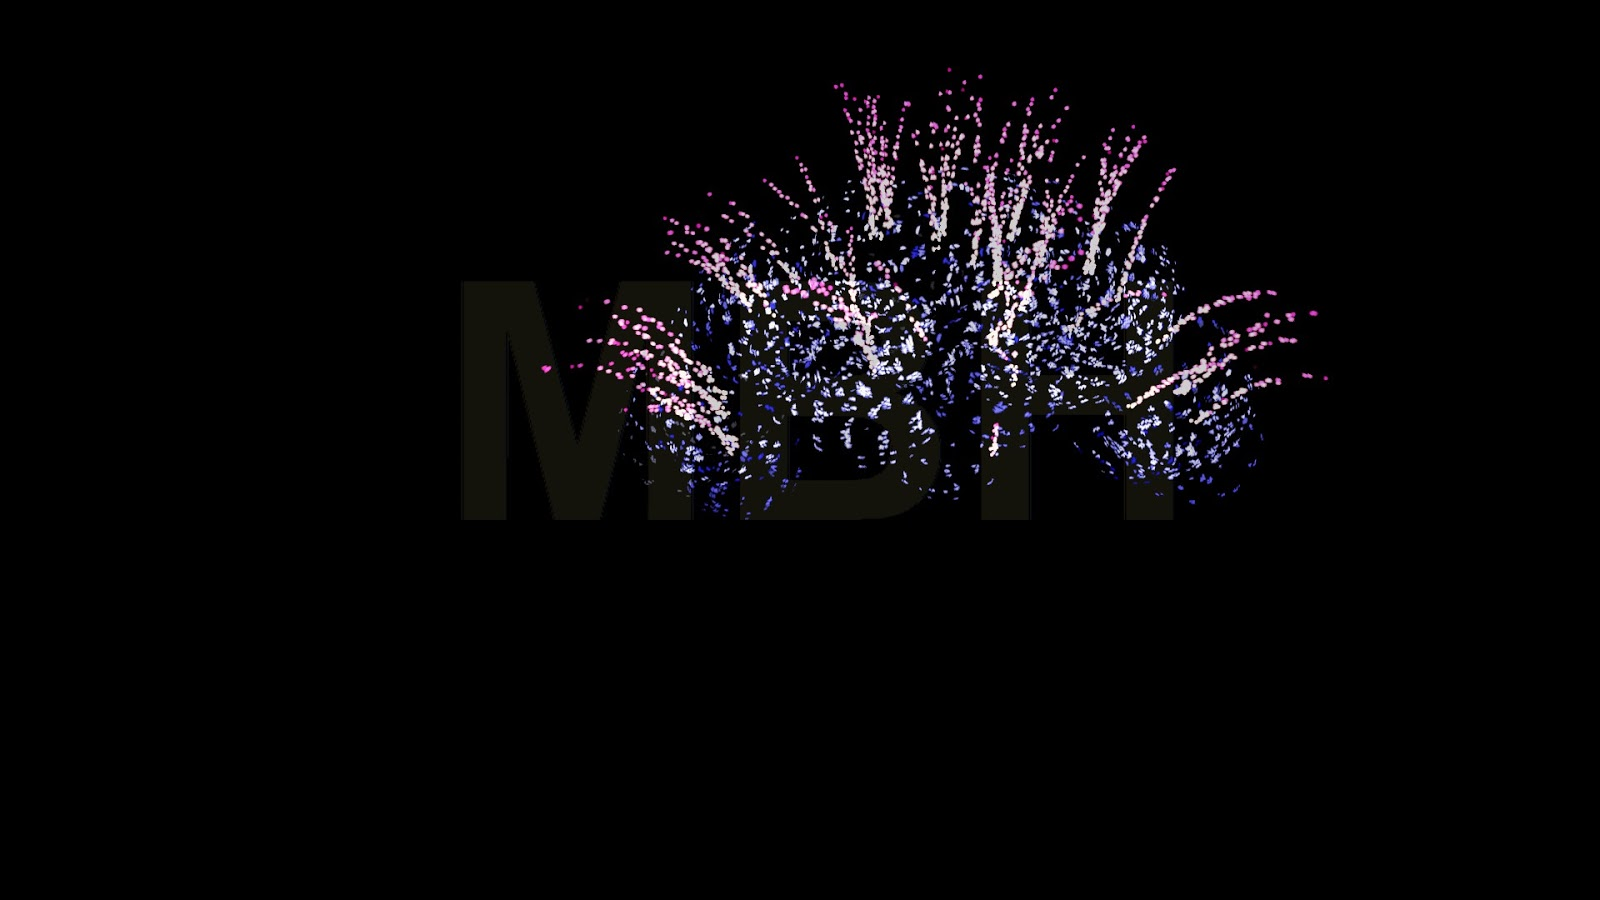 Fireworks Animated Gif Transparent More fireworks clips